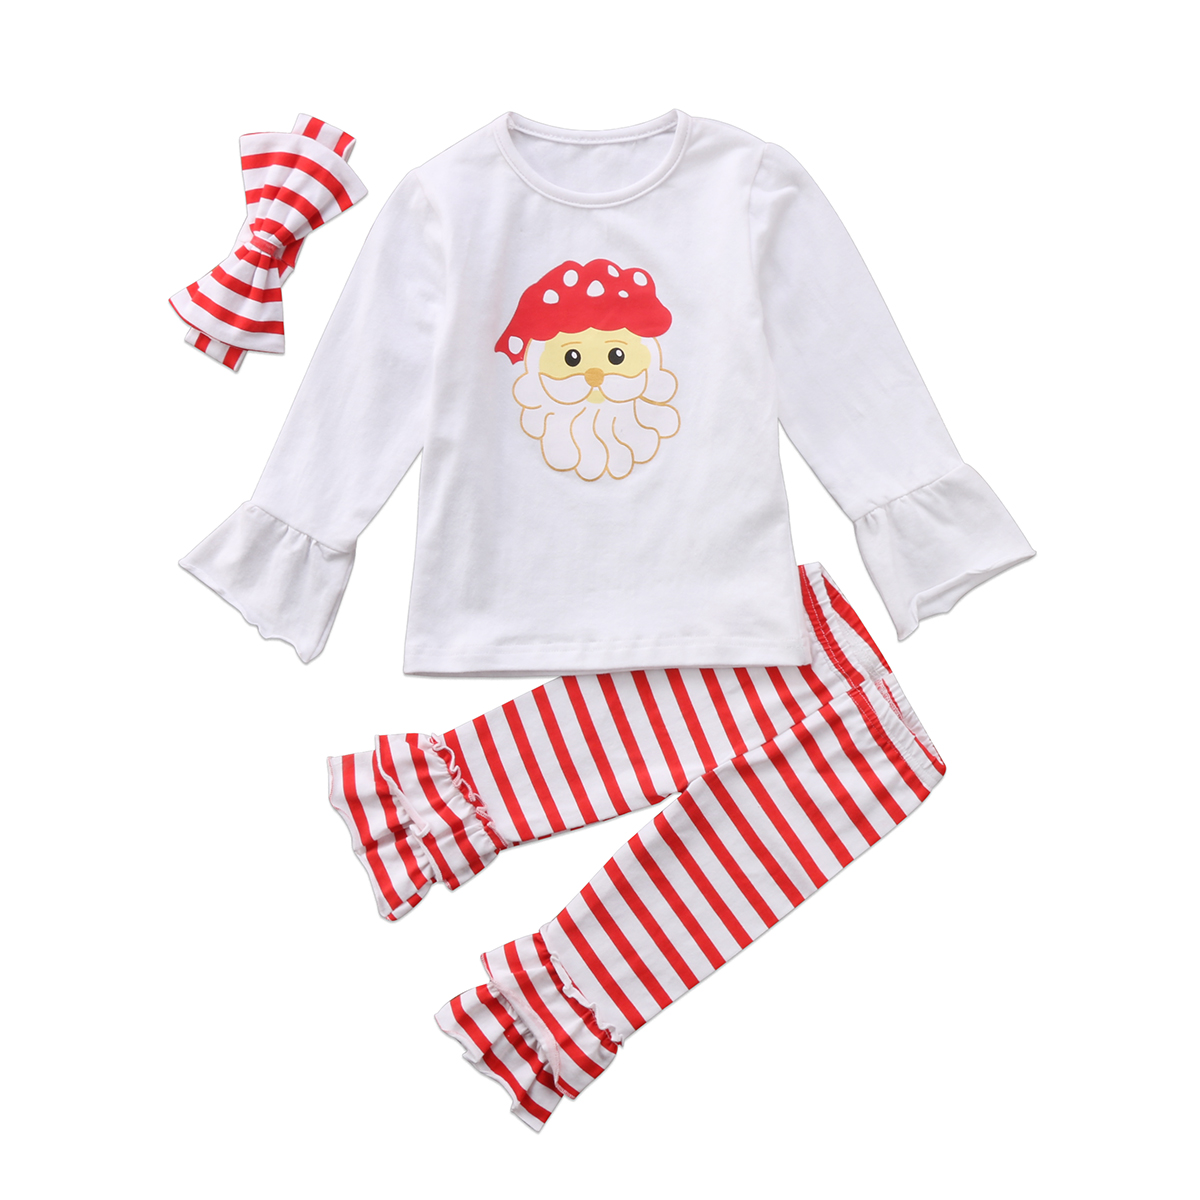 3PCS Christmas Infant Kids Baby Girl Top Dress Pants Headband Outfit Set Clothes Kids Baby Girl Christmas Clothes Set 3pcs newborn kids baby girl infant bodysuit stockings headband jumpsuit coming home clothes outfit set